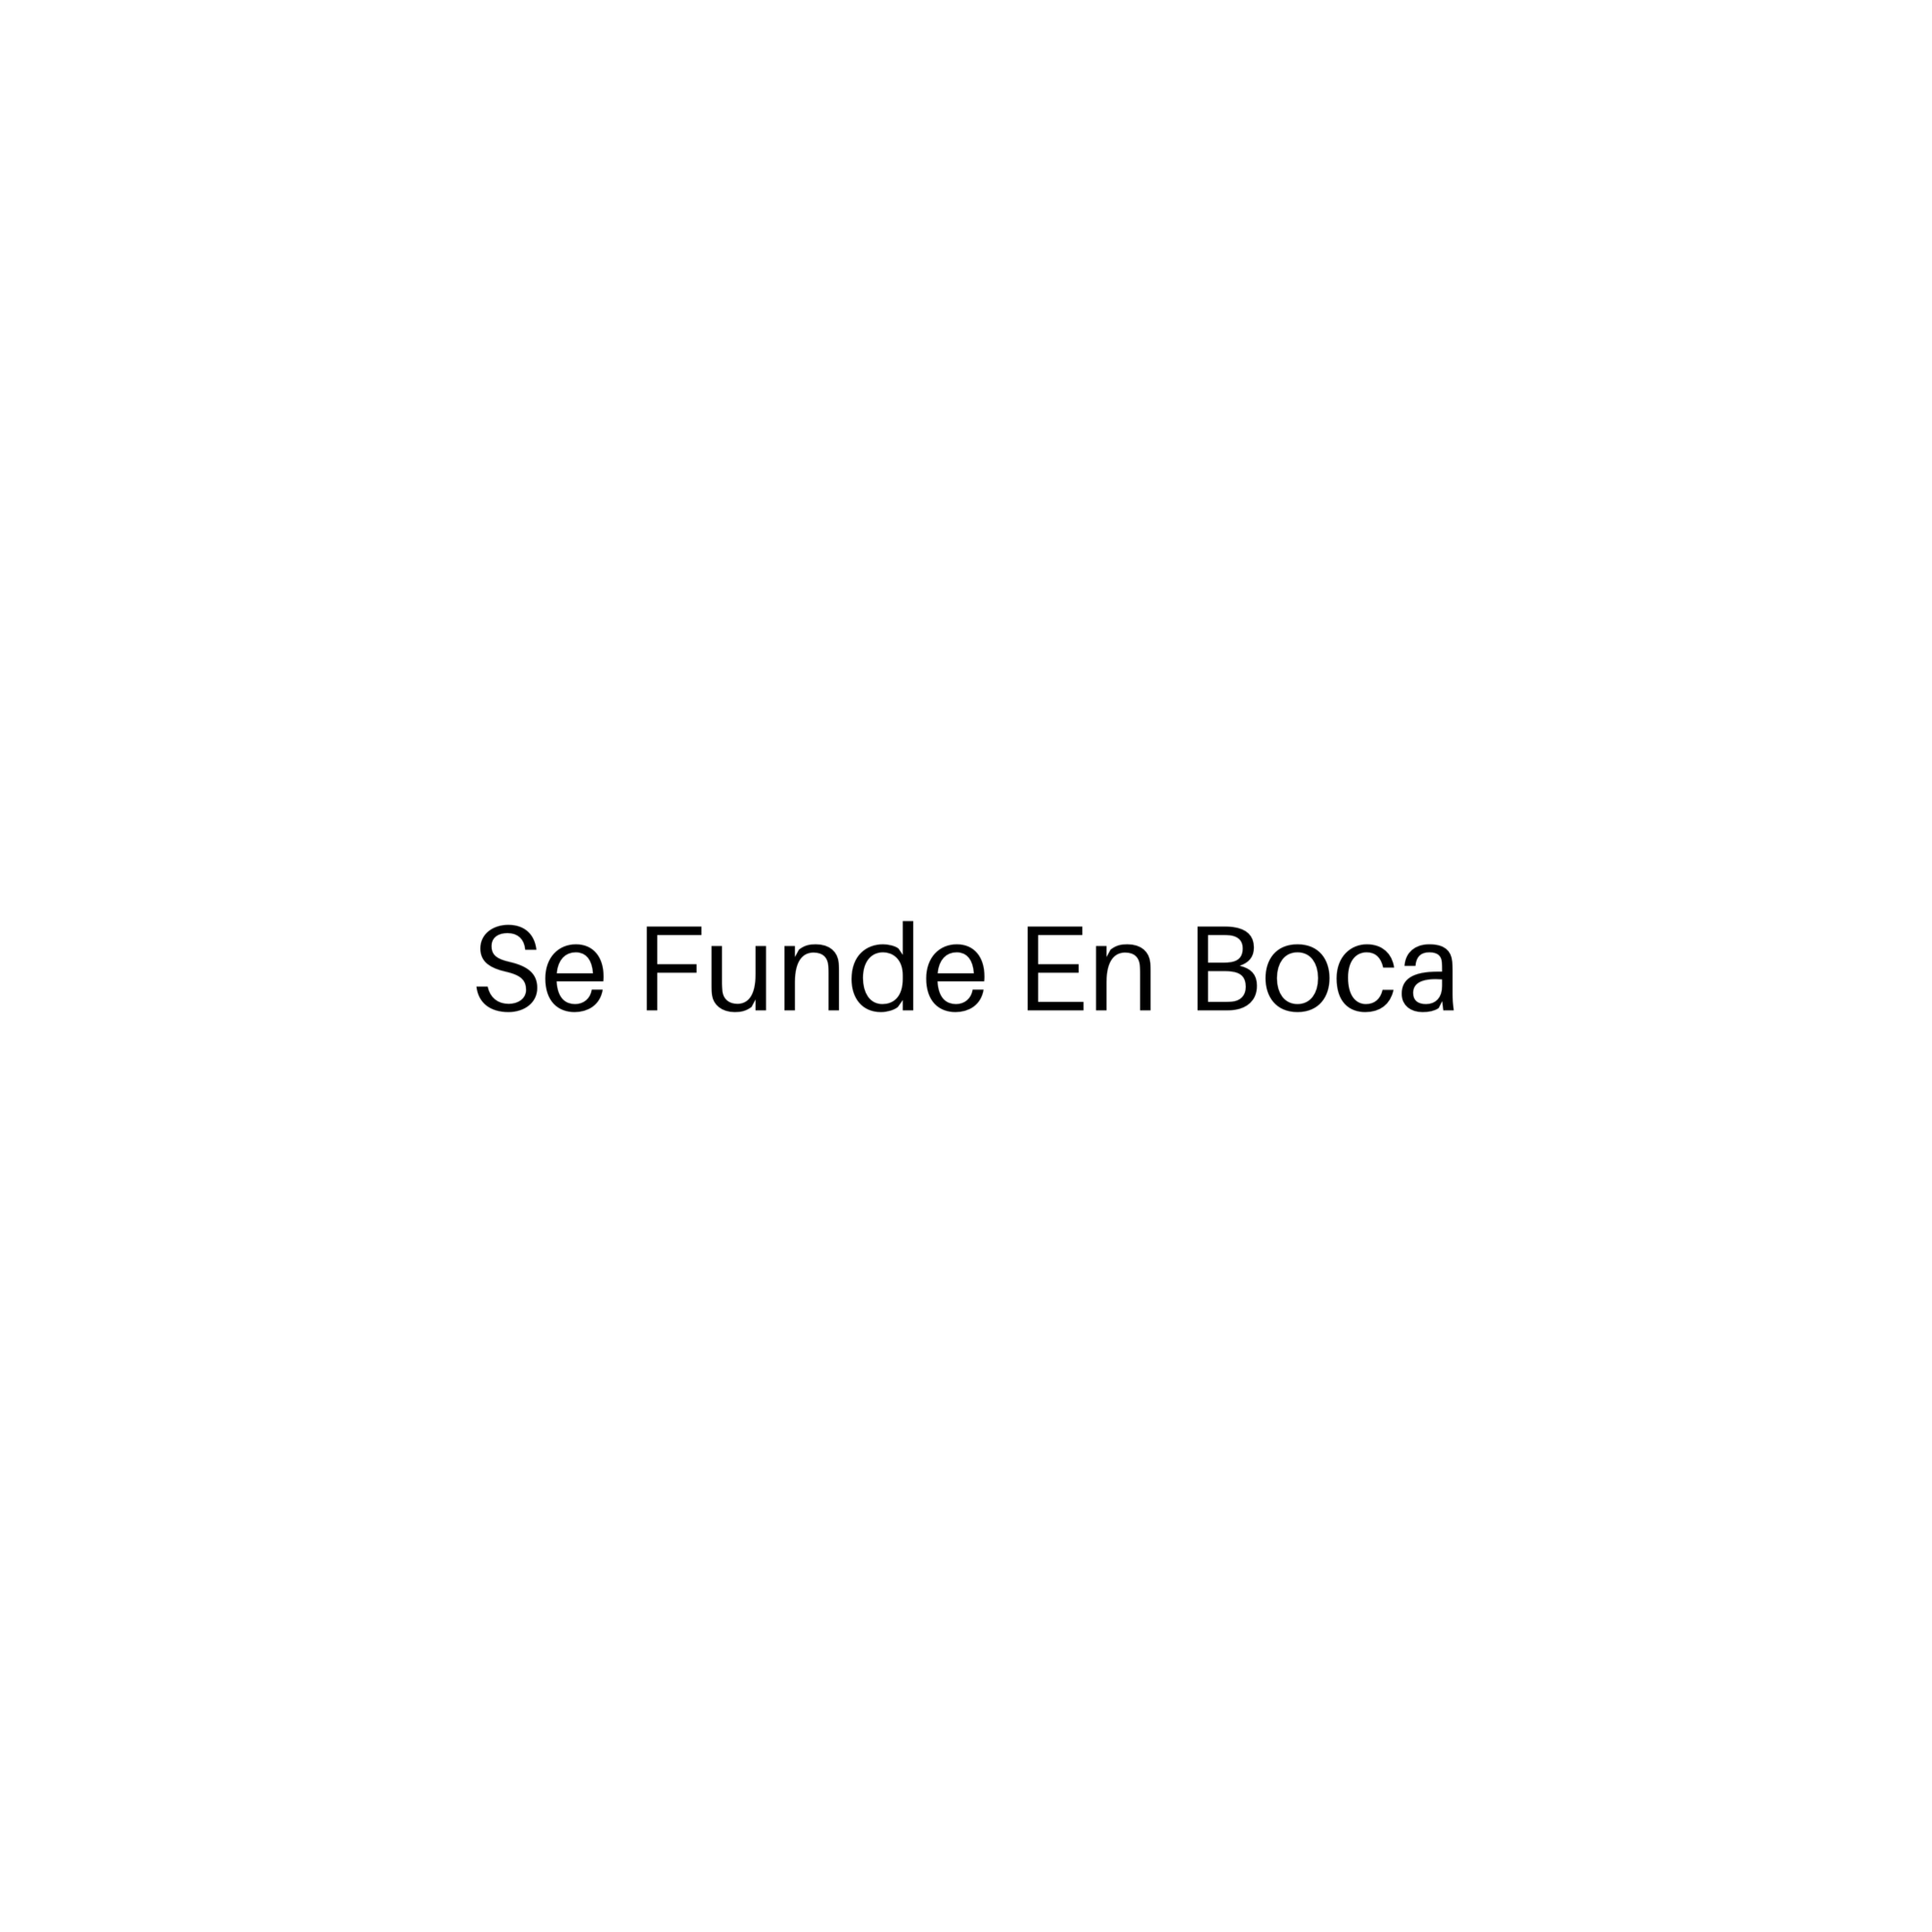 Fundente